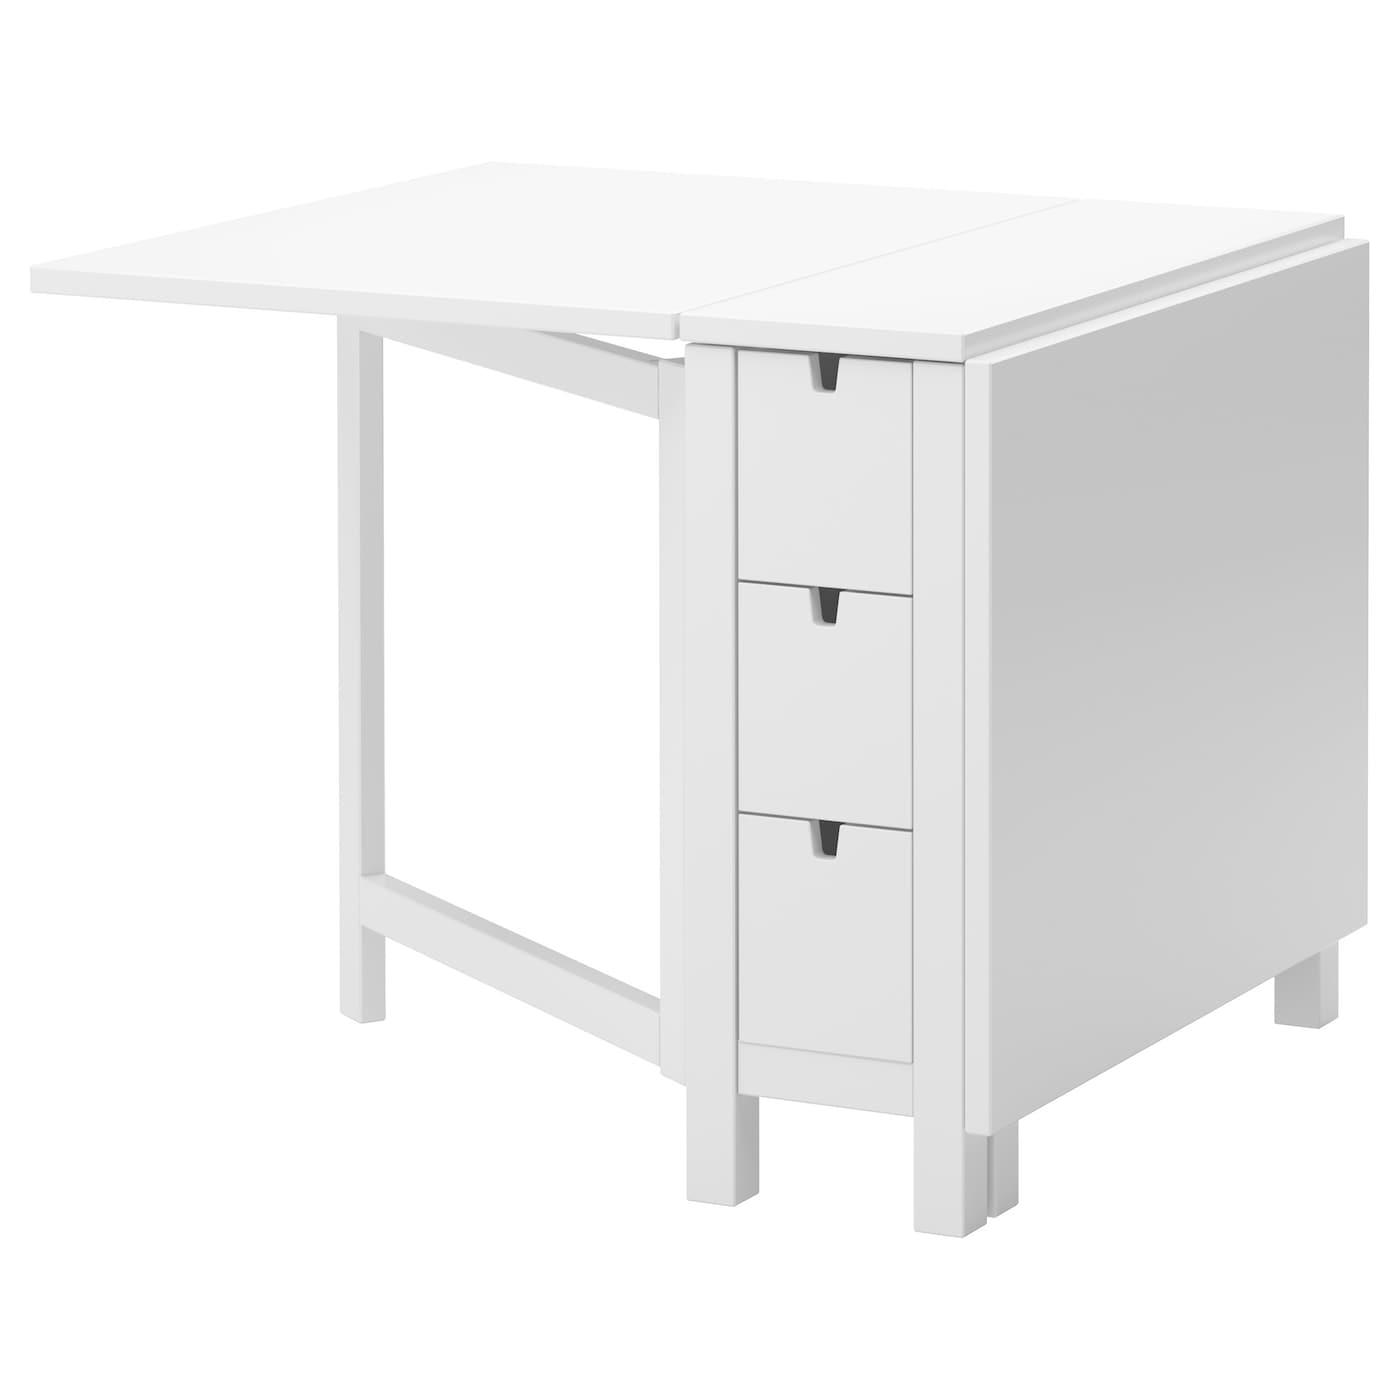 Ikea Kitchen Desk: NORDEN Gateleg Table White 26/89/152 X 80 Cm